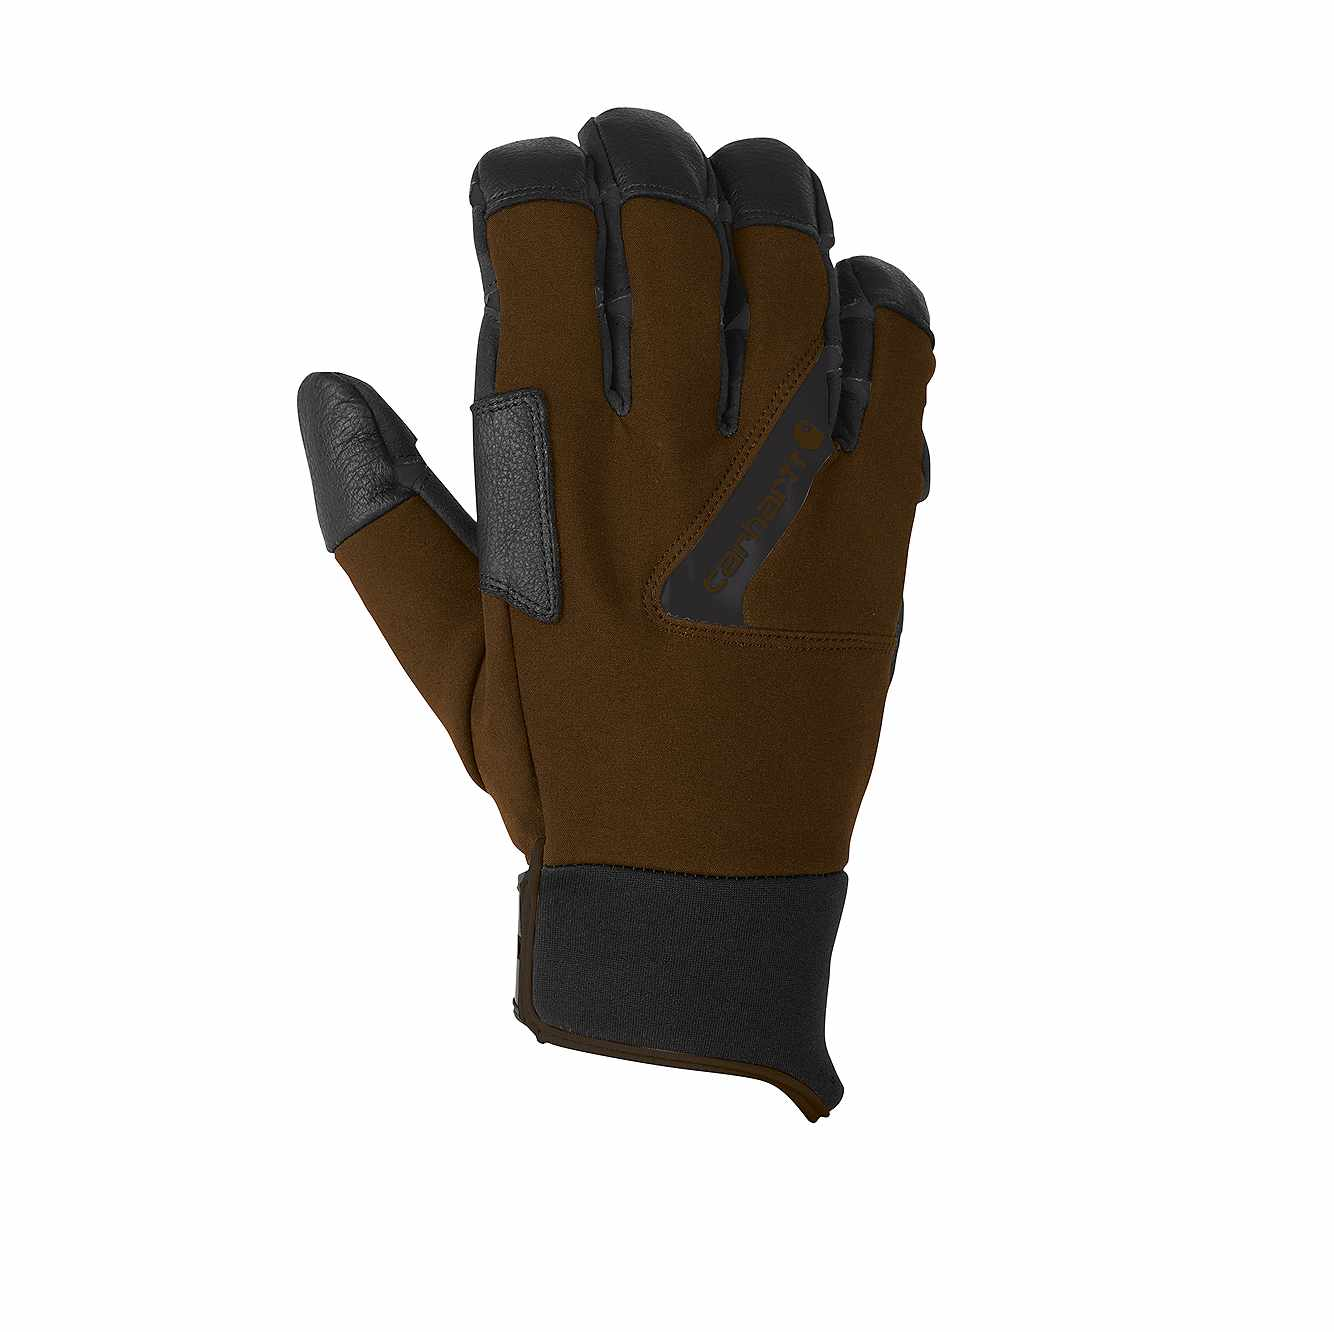 Picture of Sledge Hammer High Dexterity Glove in Heather Grey/Coal Heather